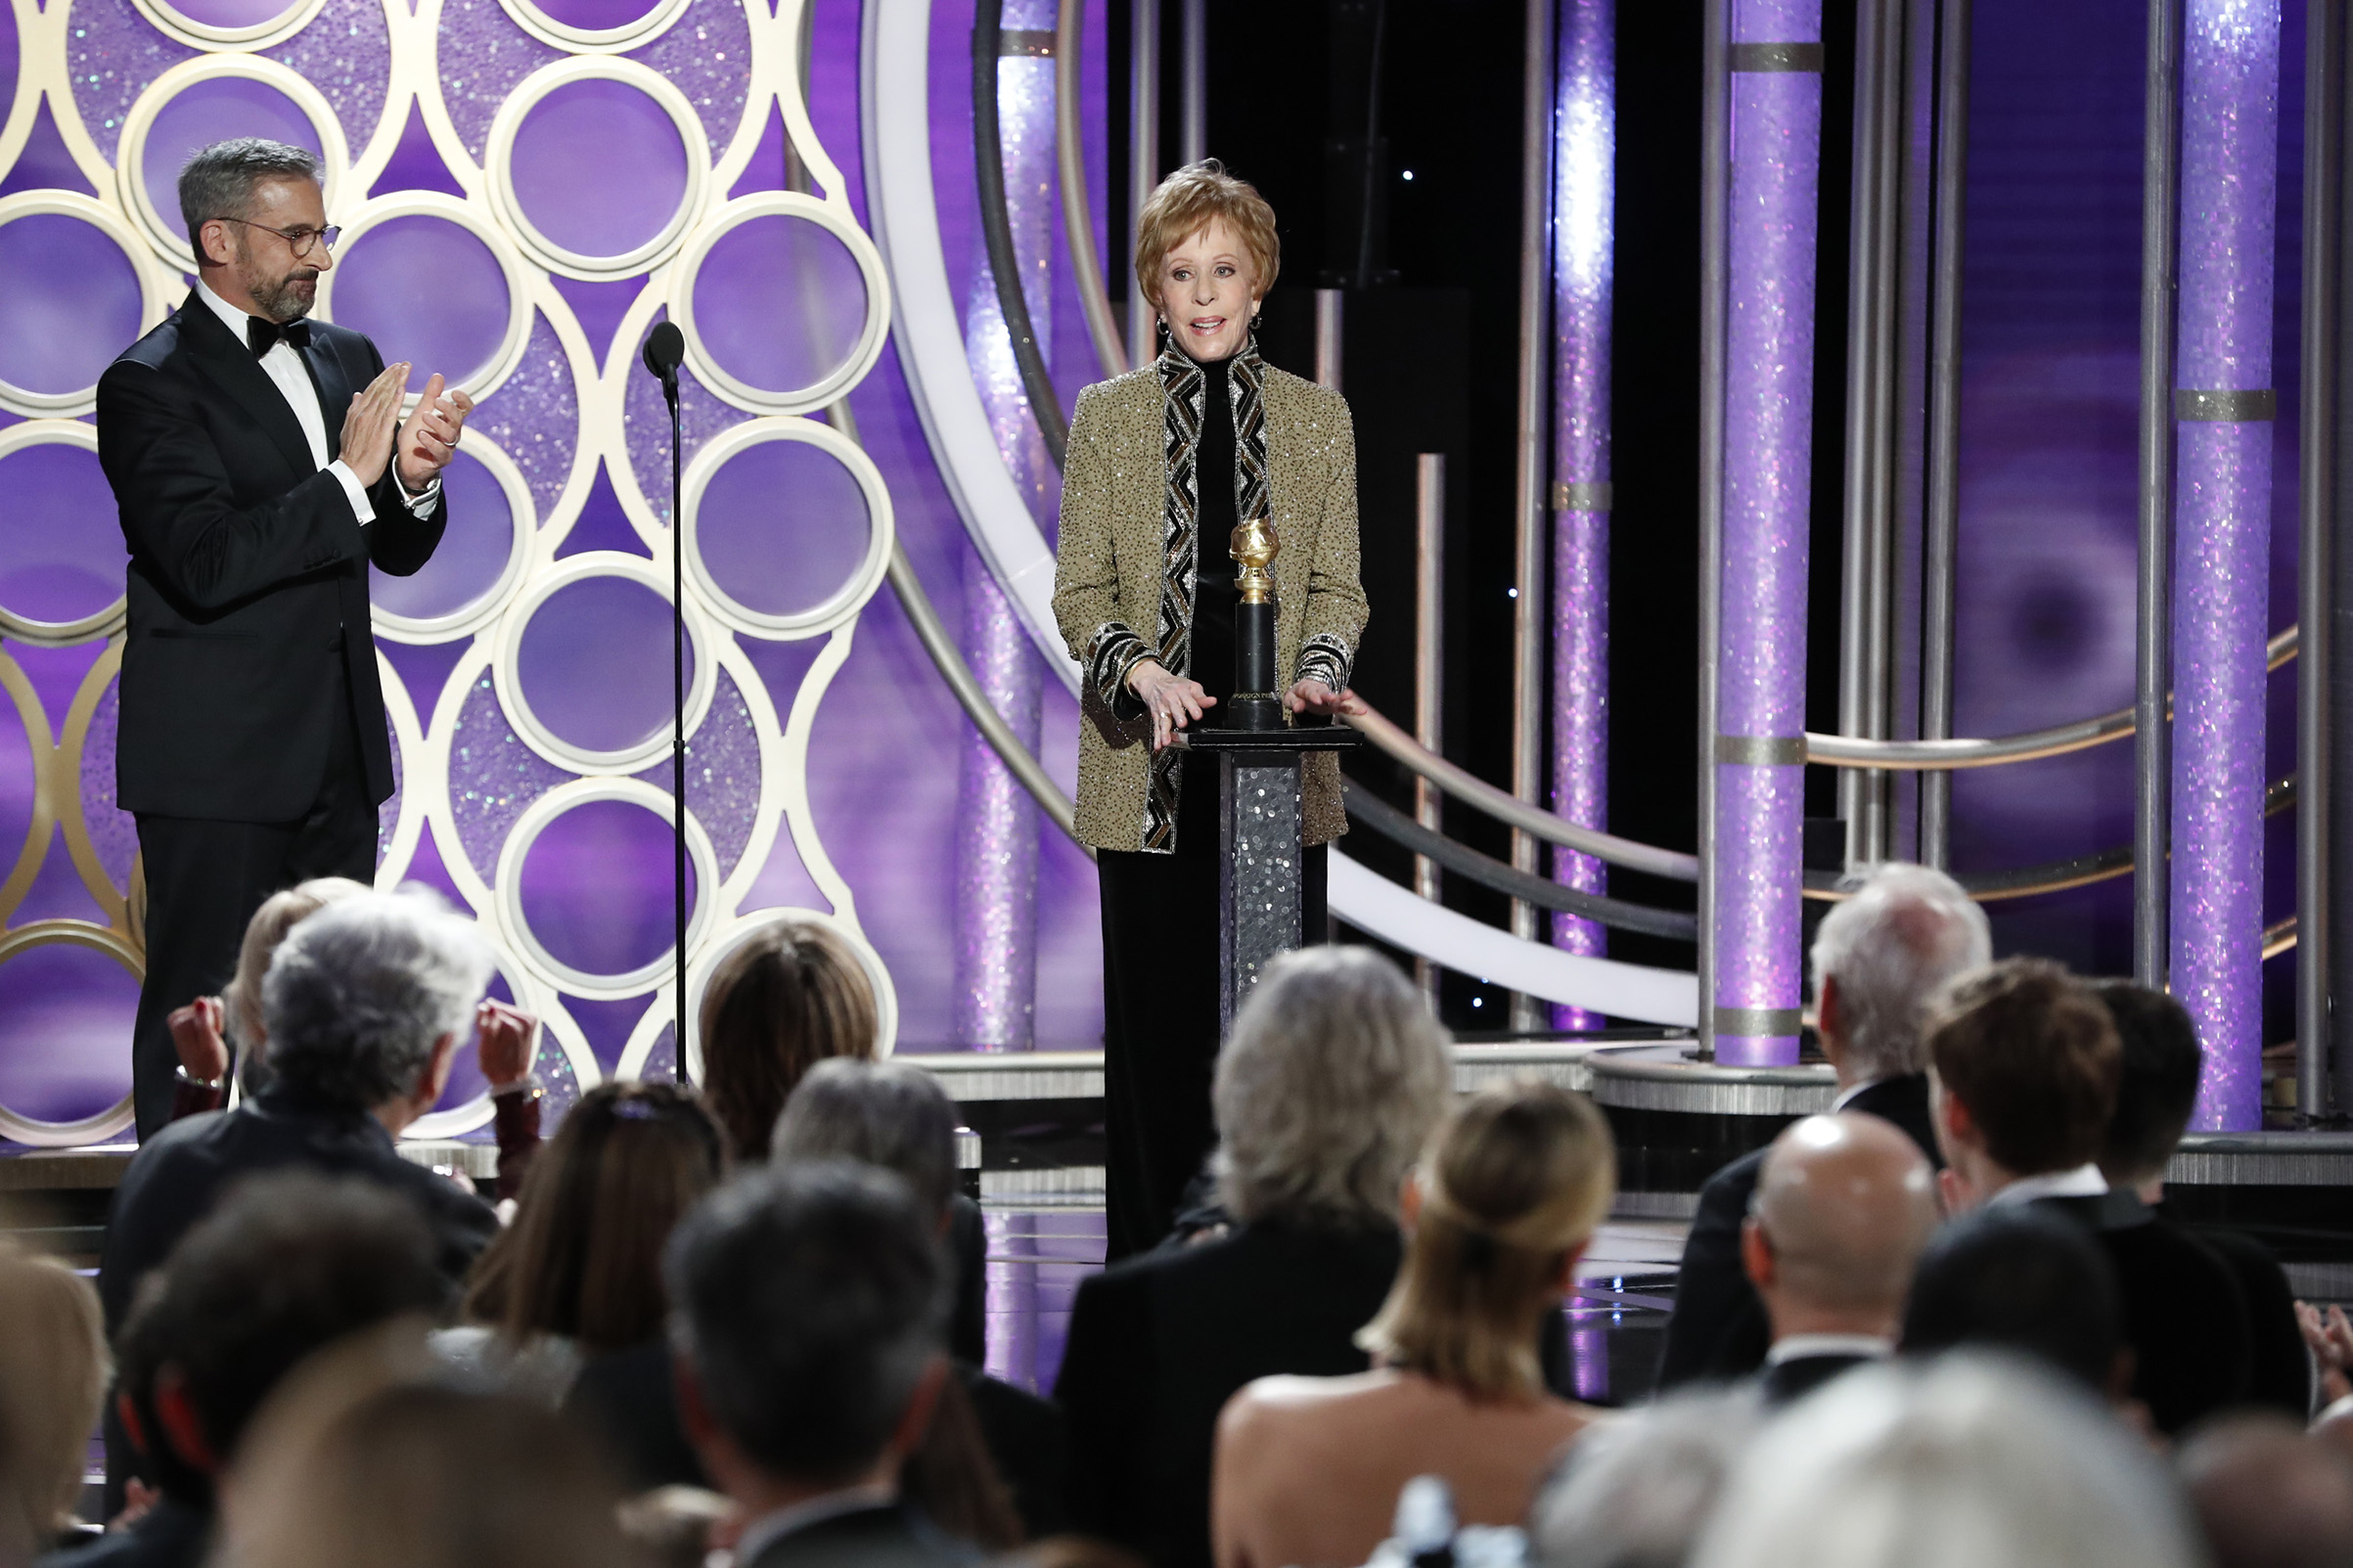 Carol Burnett accepts the Carol Burnett TV Achievement Award onstage during the 76th Annual Golden Globe Awards.